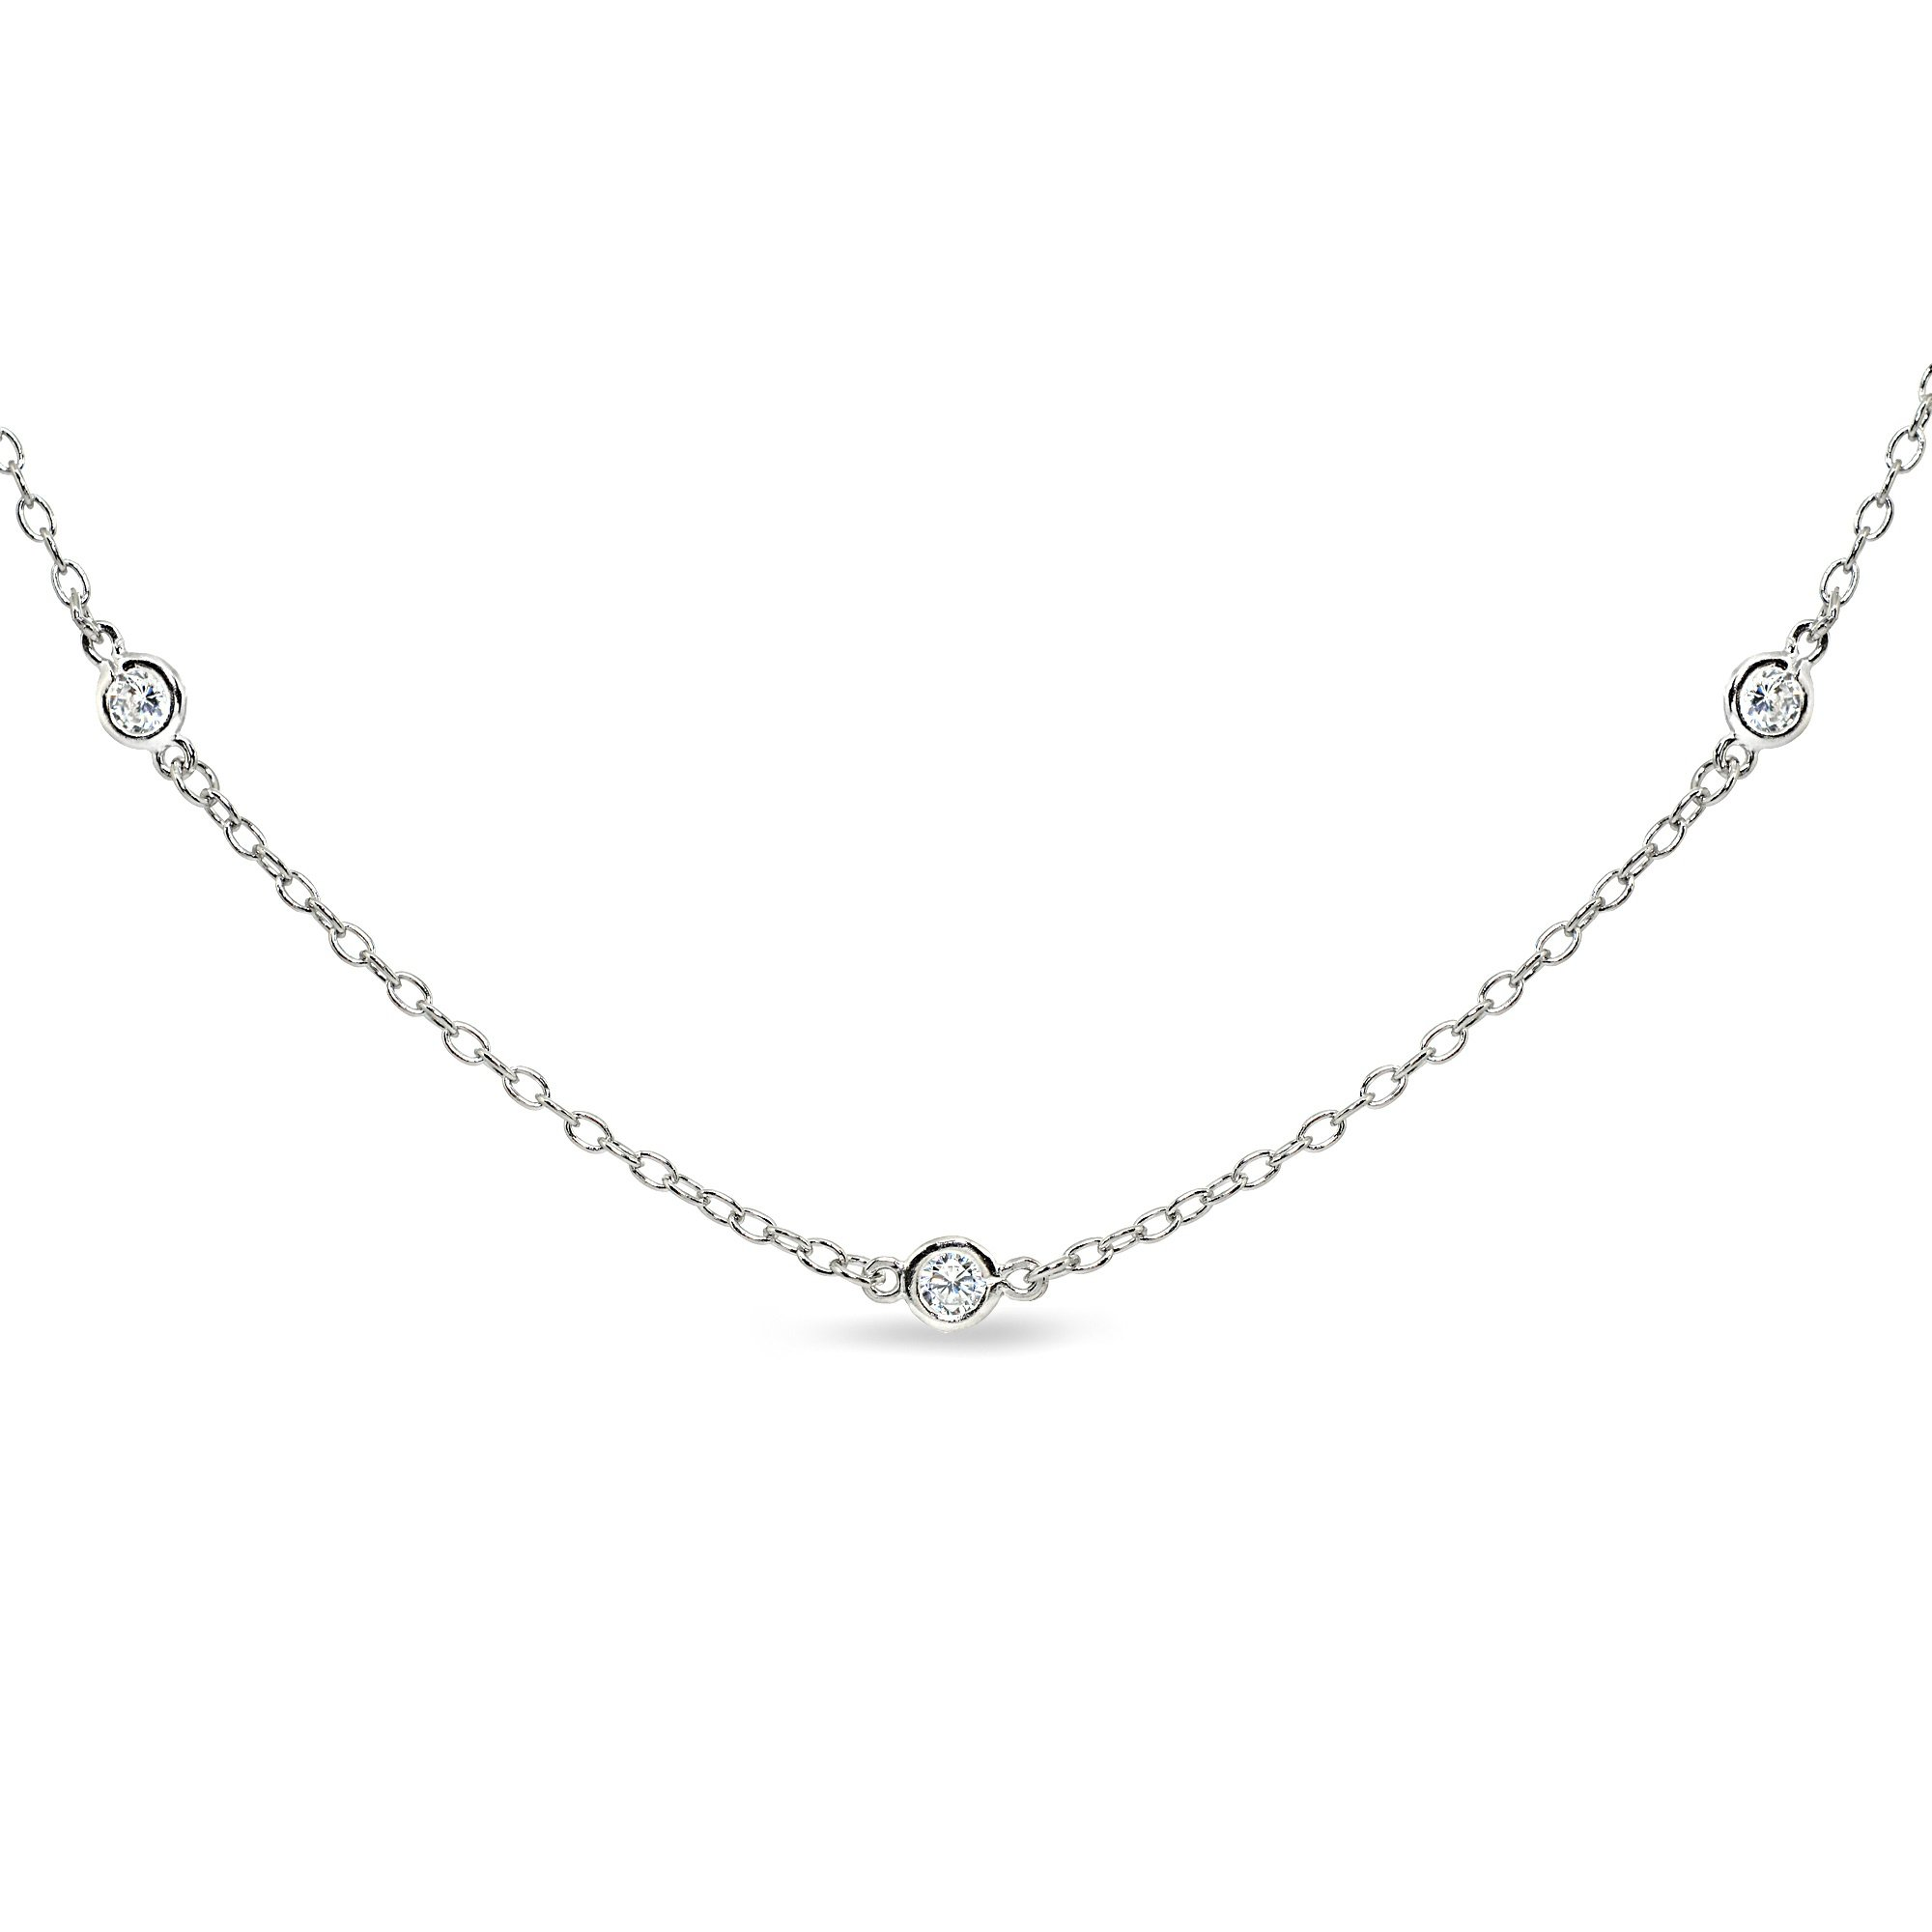 GemStar USA Sterling Silver Cubic Zirconia Station Dainty Chain Choker Necklace